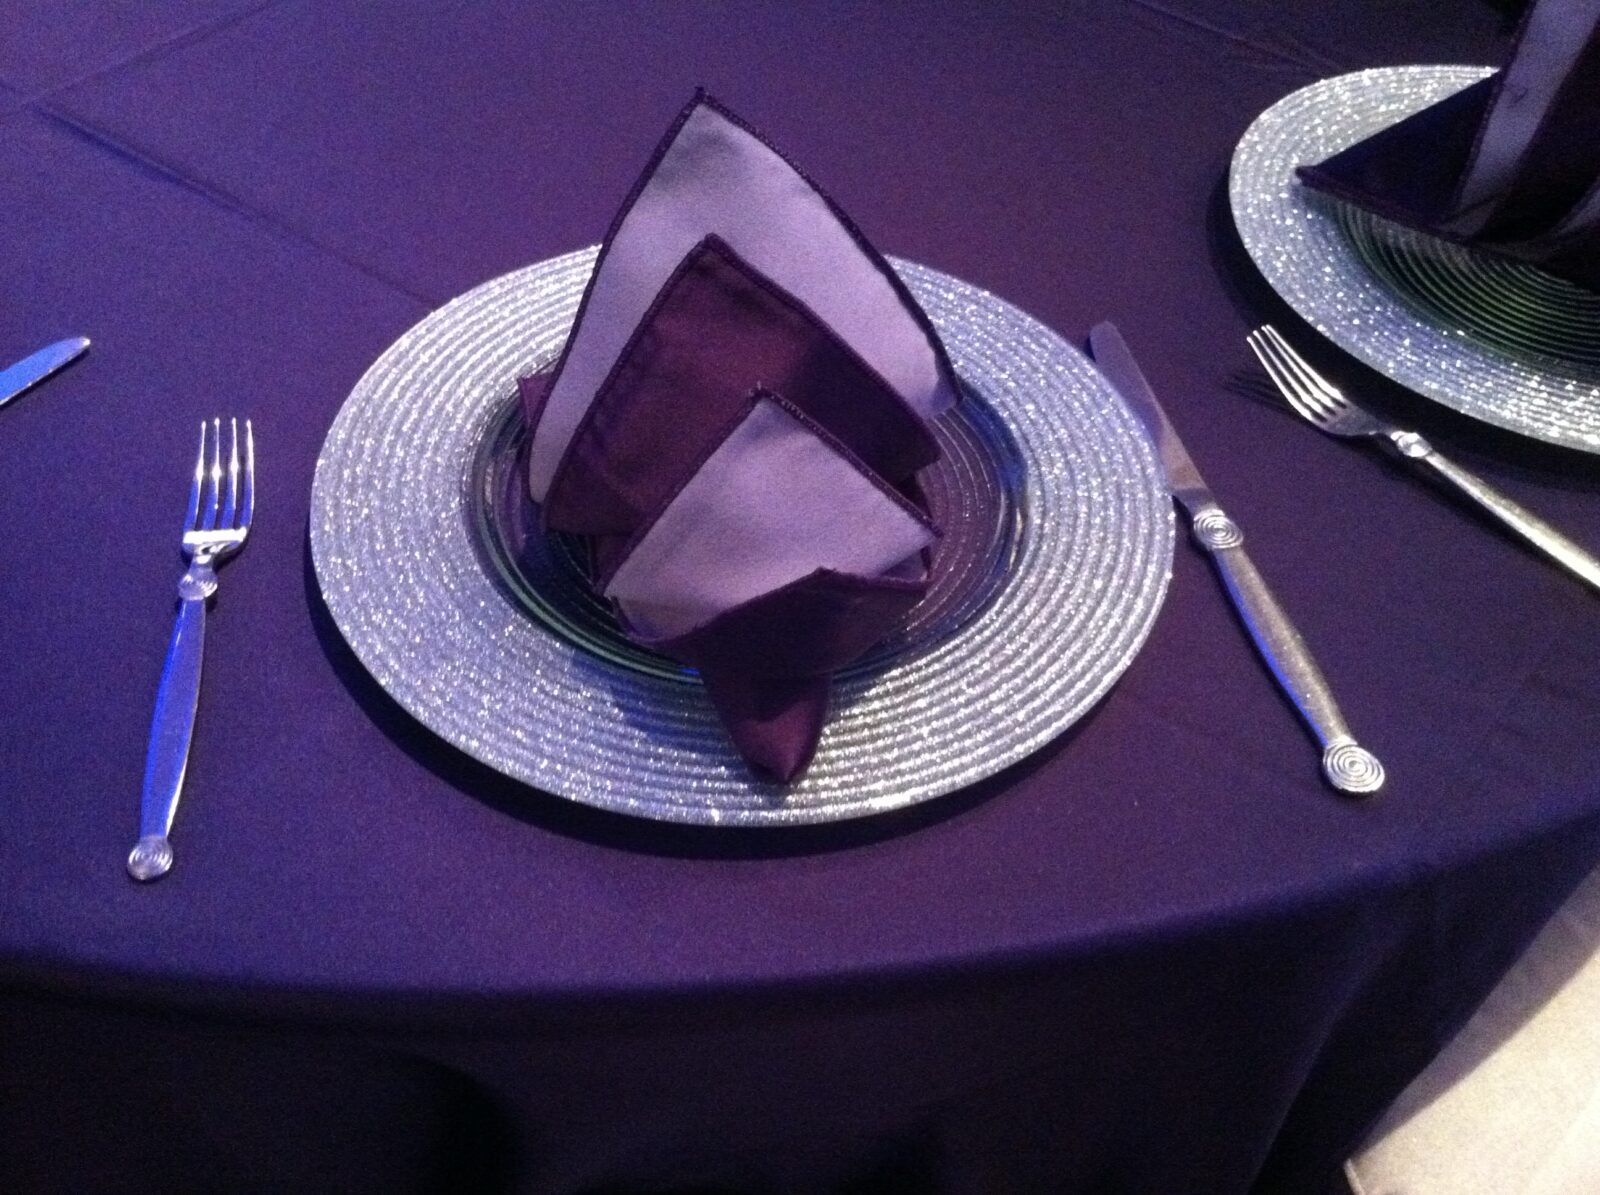 Blue Spark Event Design - Purple satin linen - Silver charter, Purple Satin Napkin